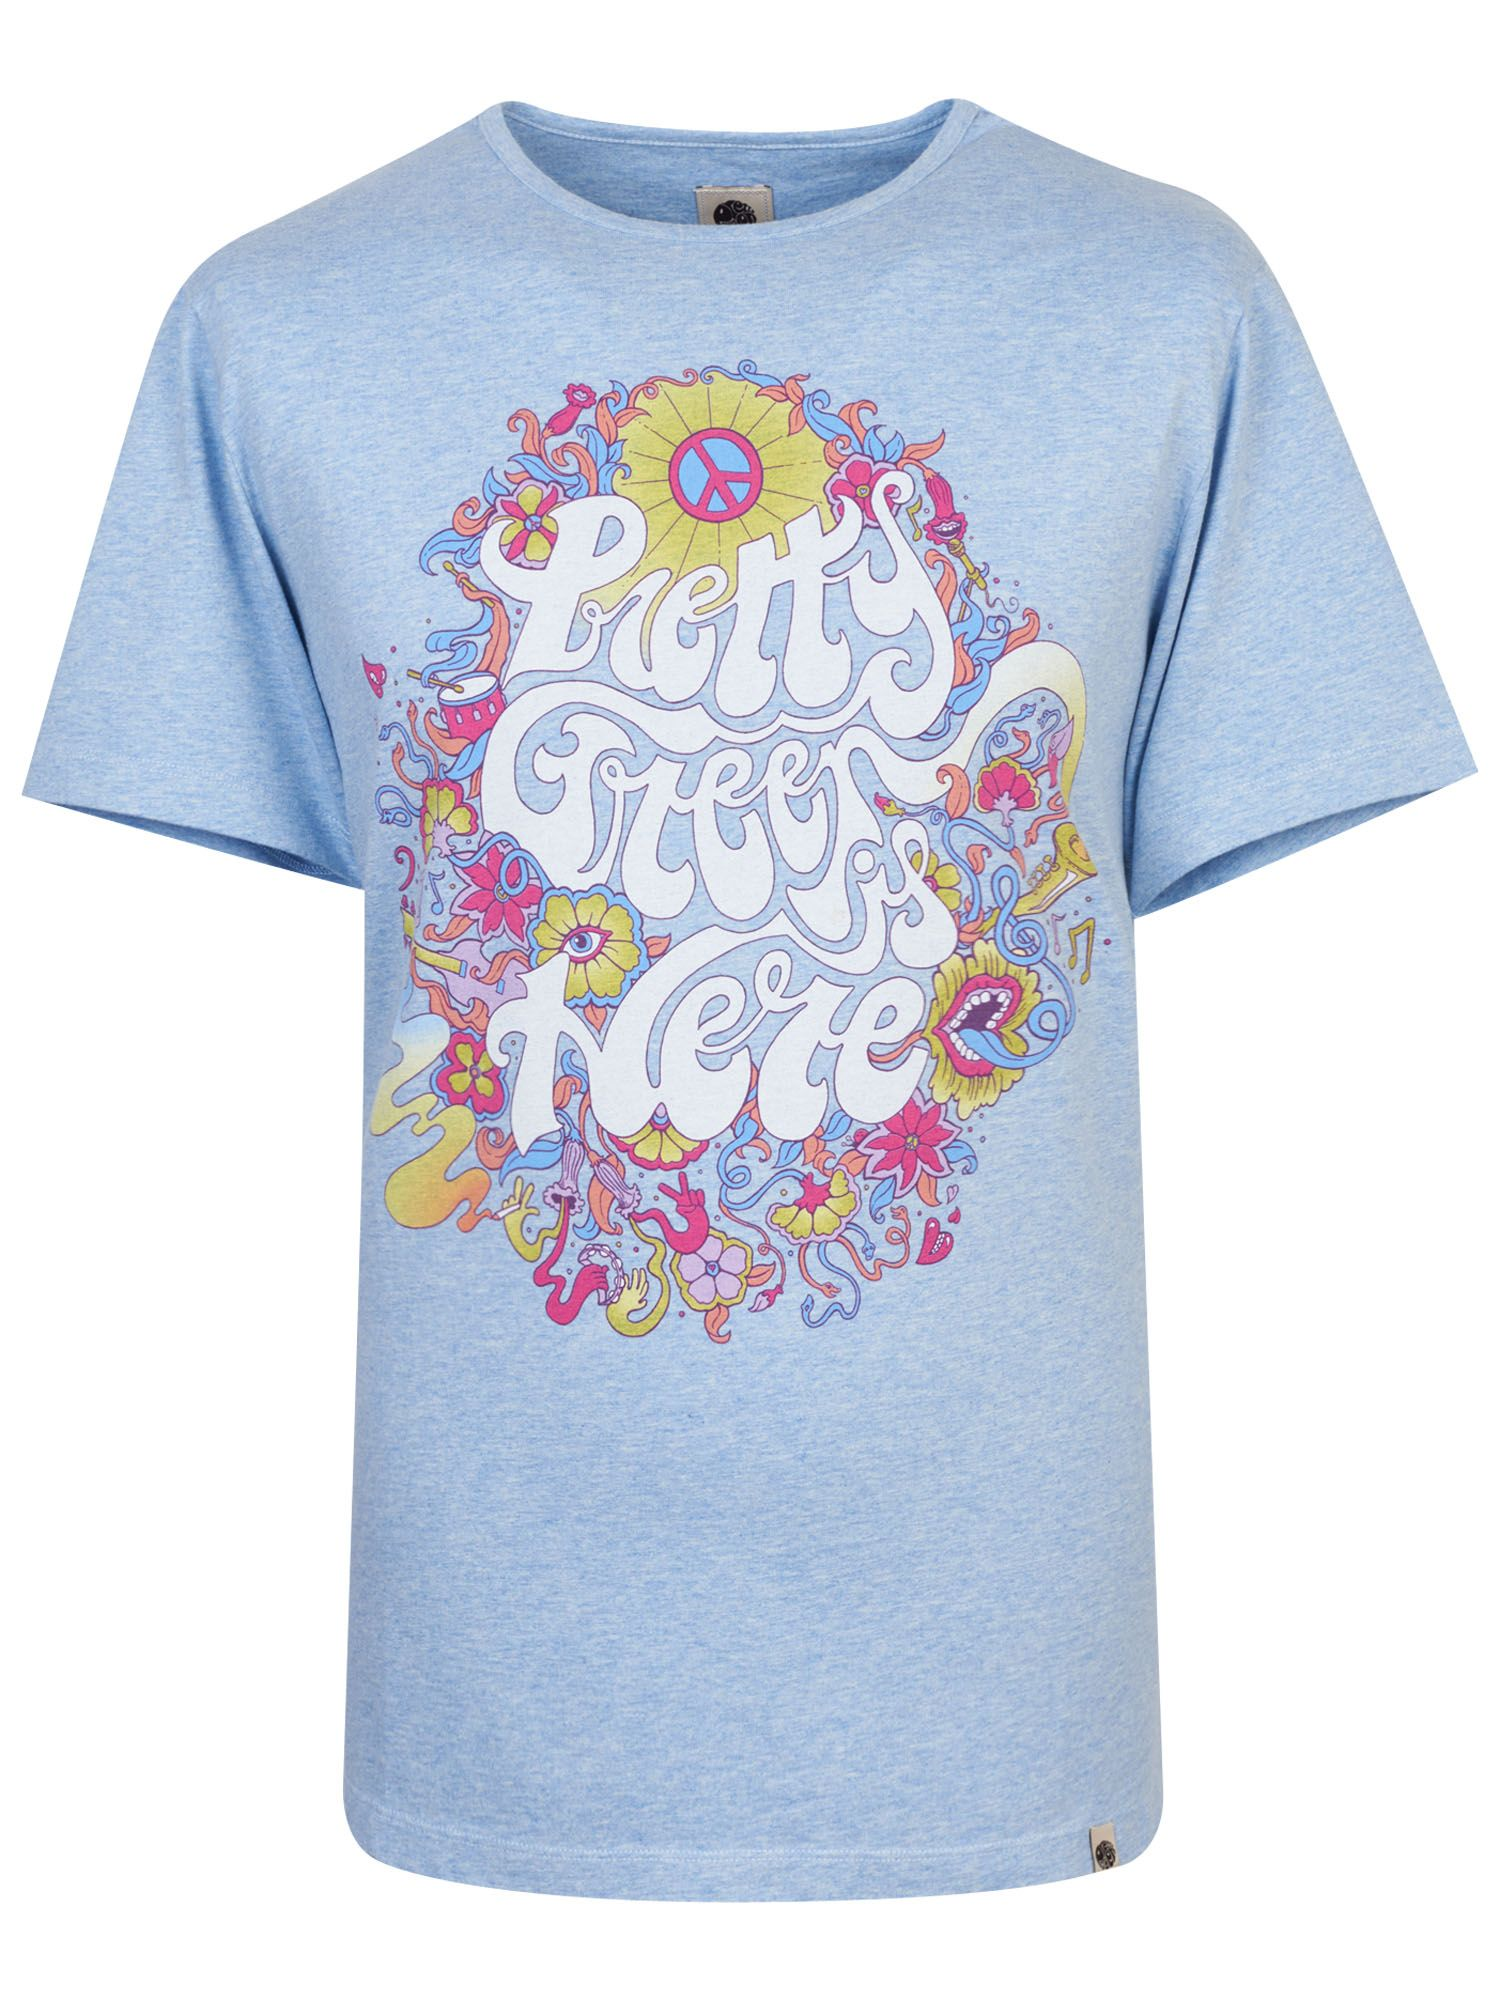 Men's Pretty Green Floral Print T-Shirt, Blue Marl